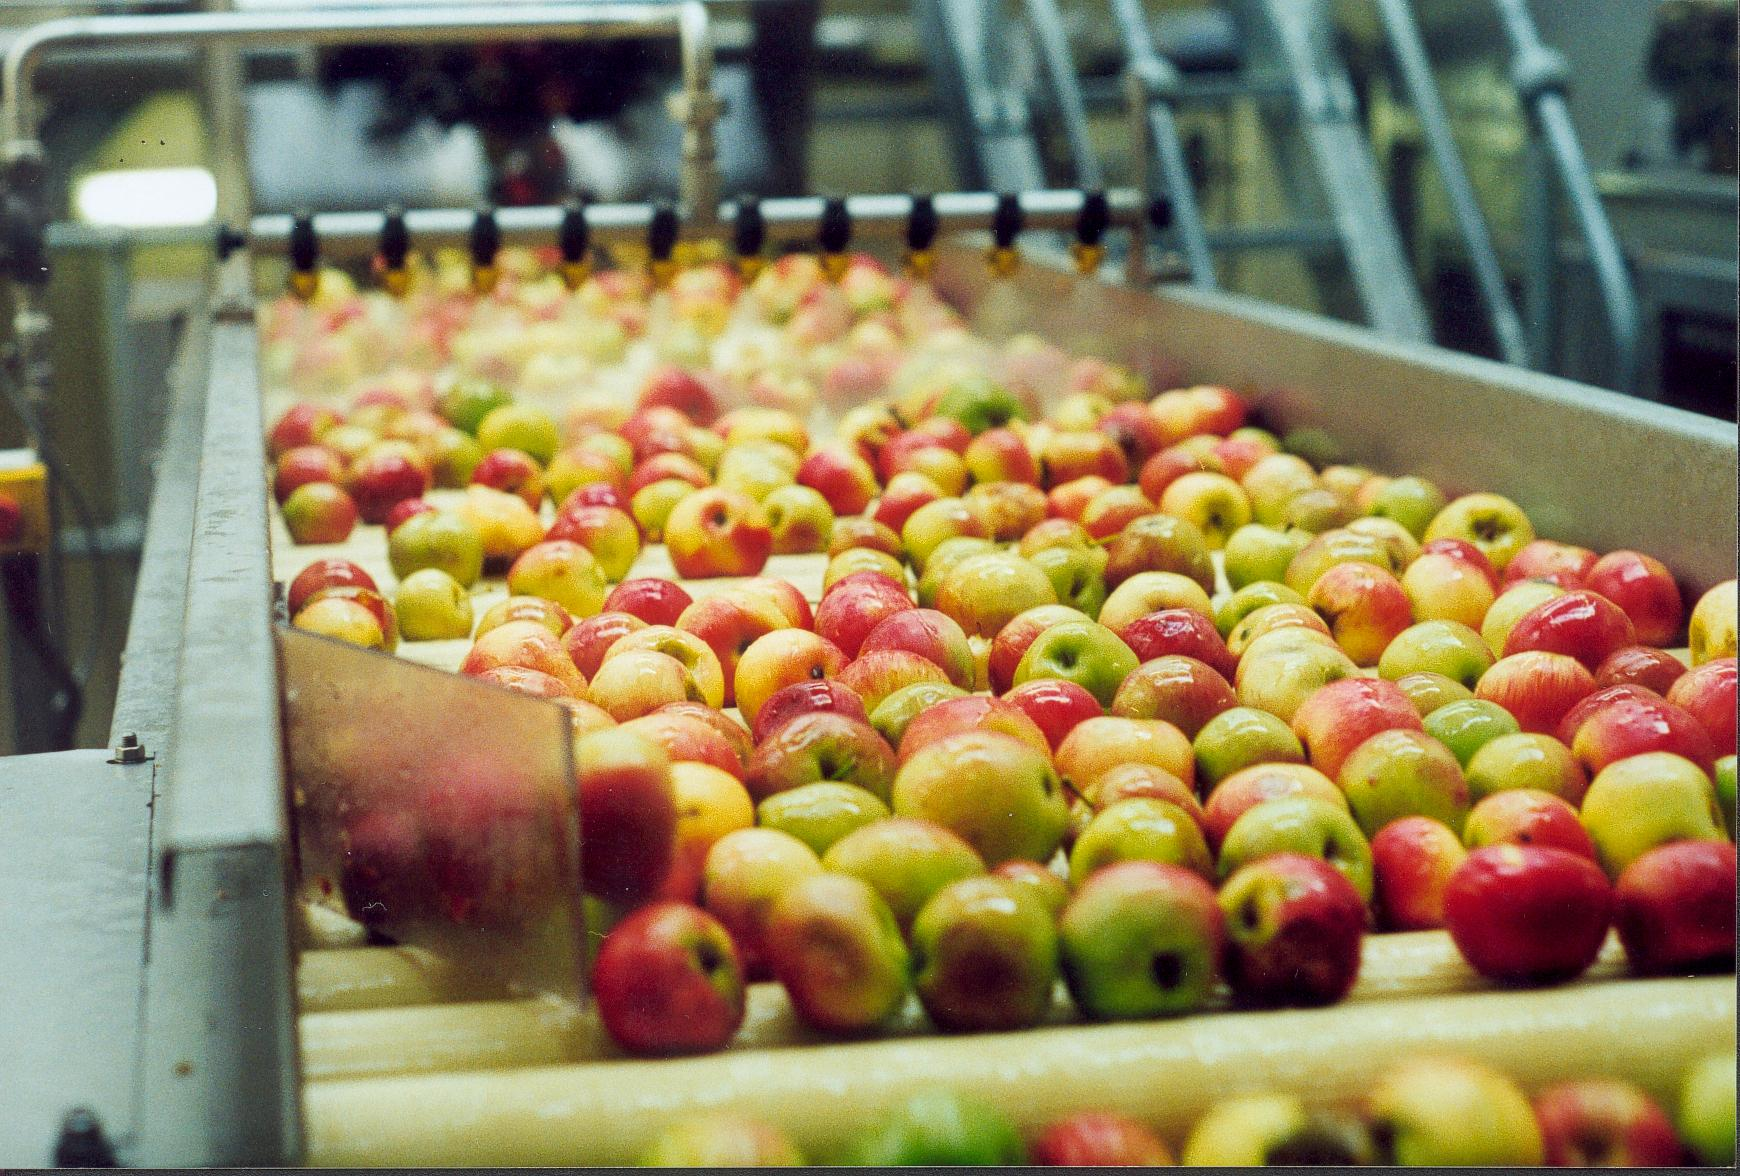 Cider mill's £1m investment plan for new orchards and 'green' apple projects